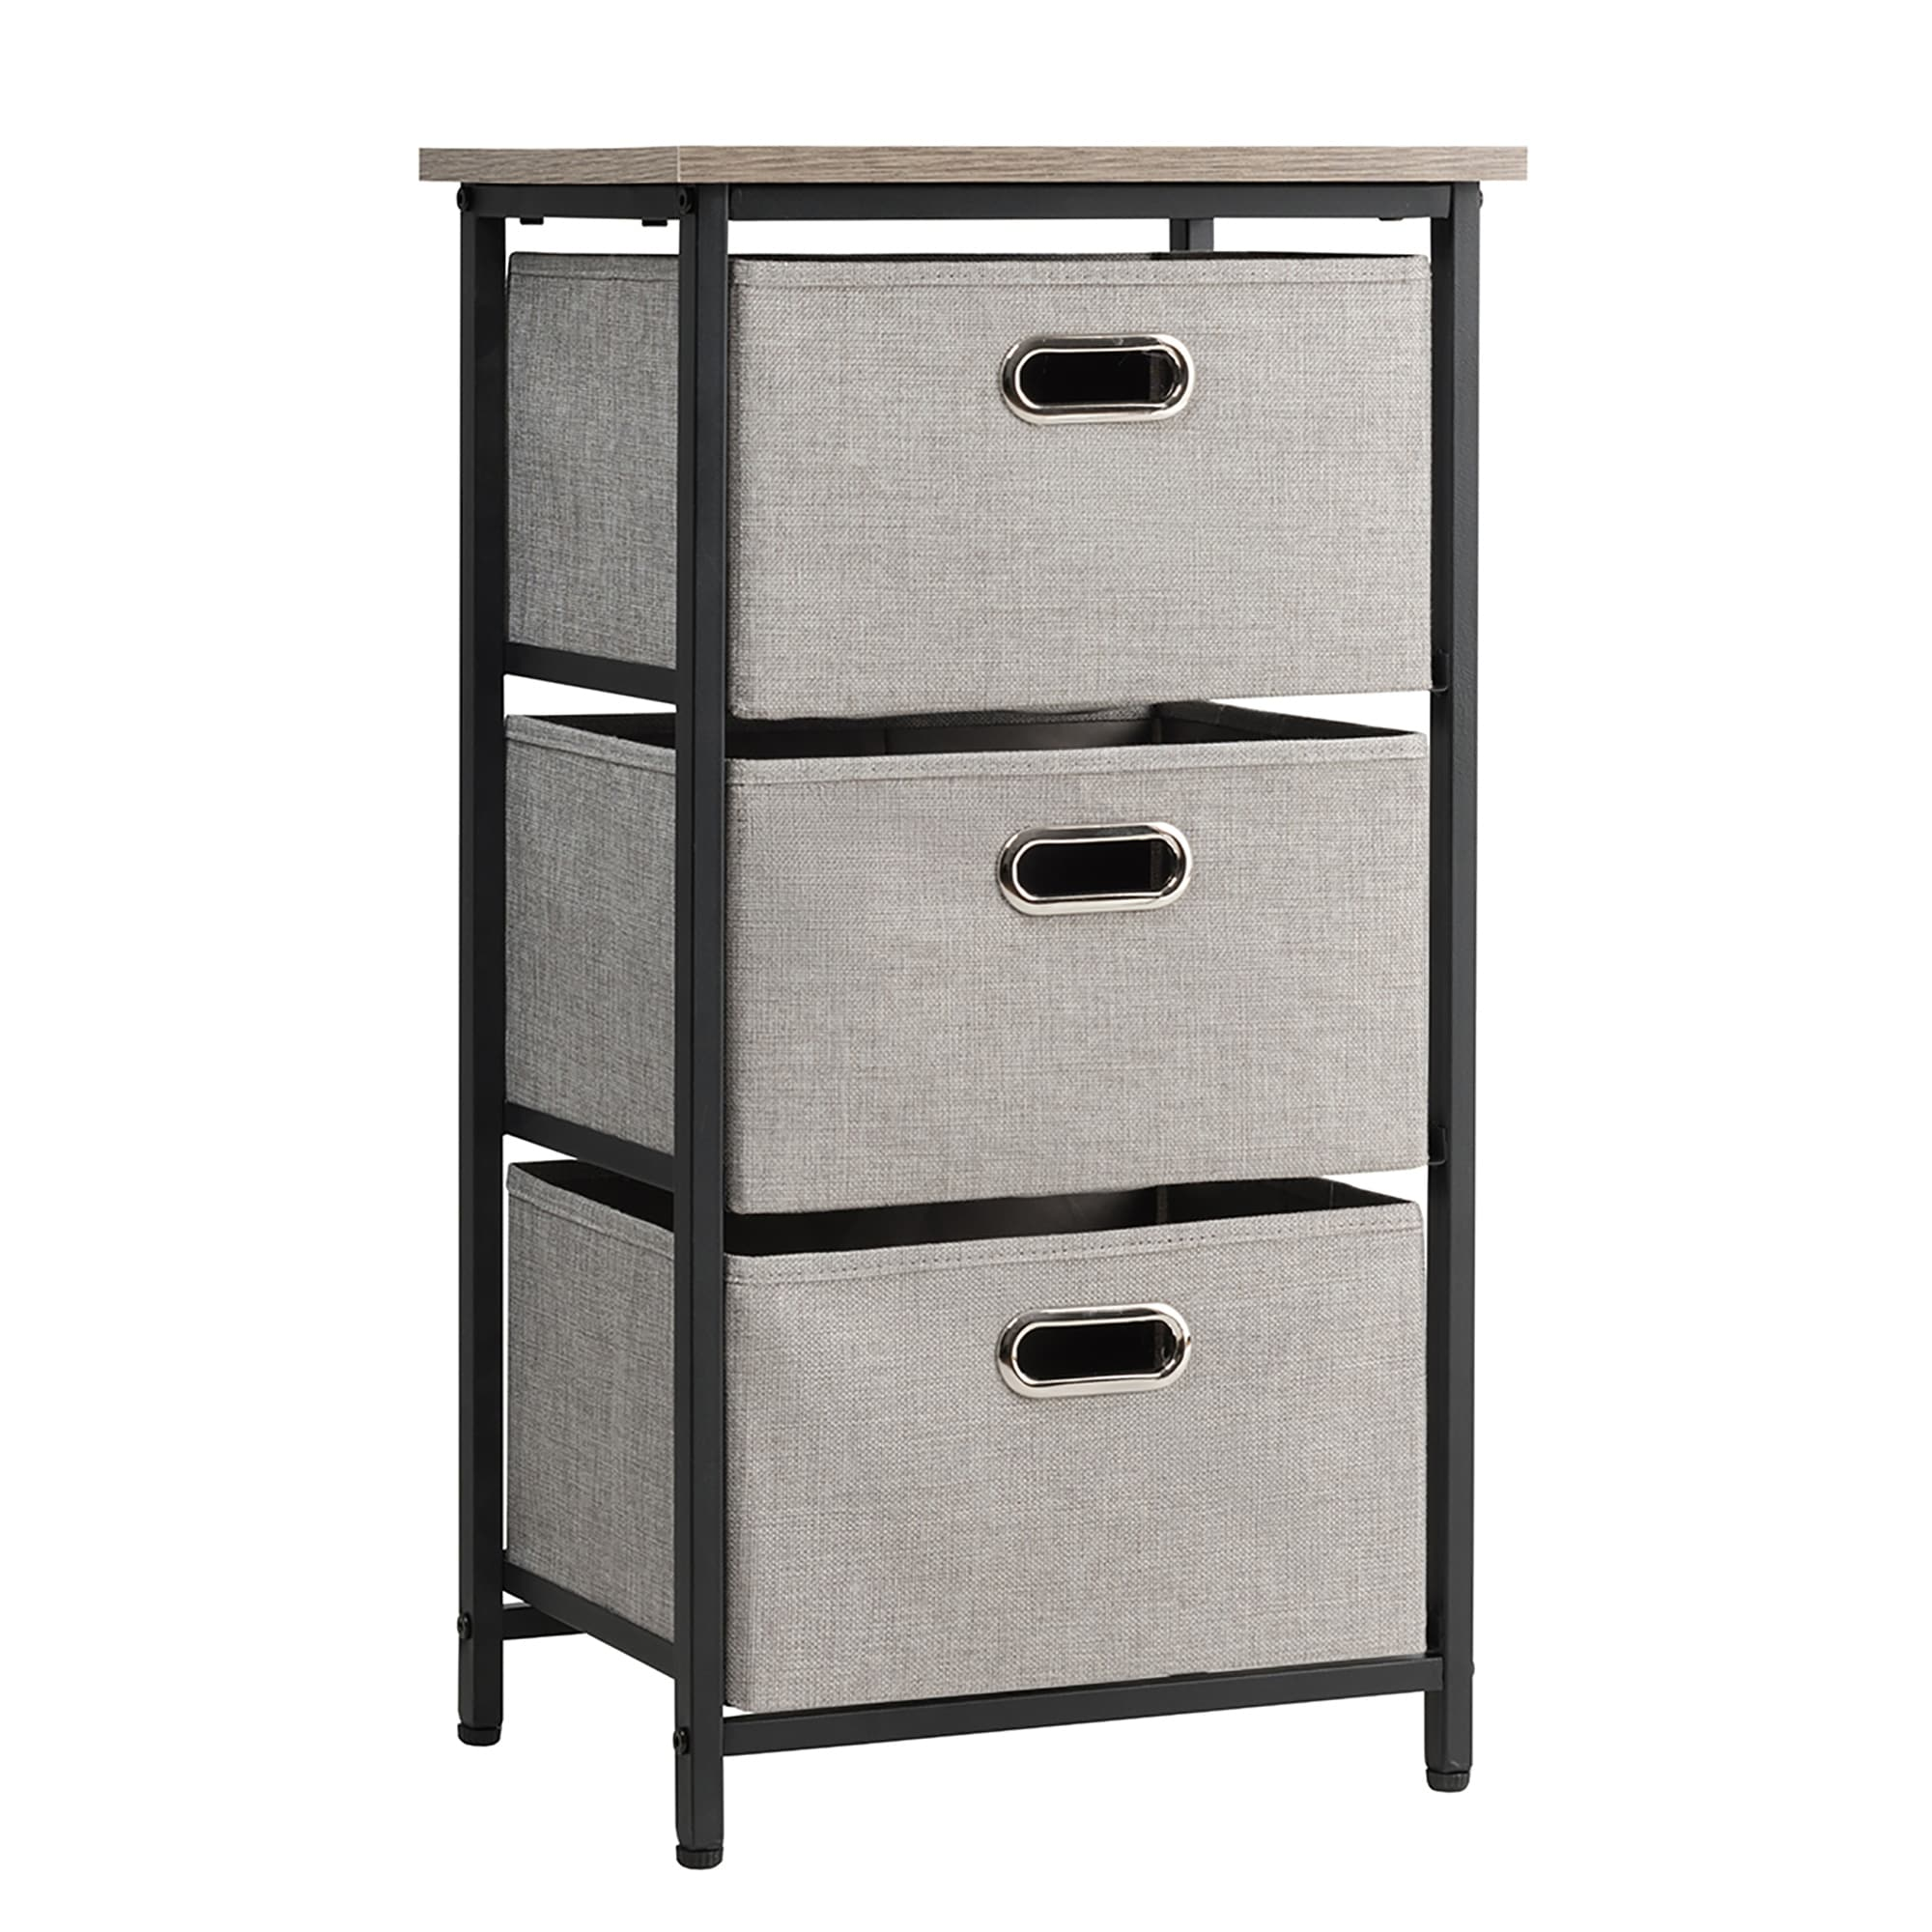 3 Drawer Fabric Dresser Storage Tower Organizer Unit Overstock 32048216